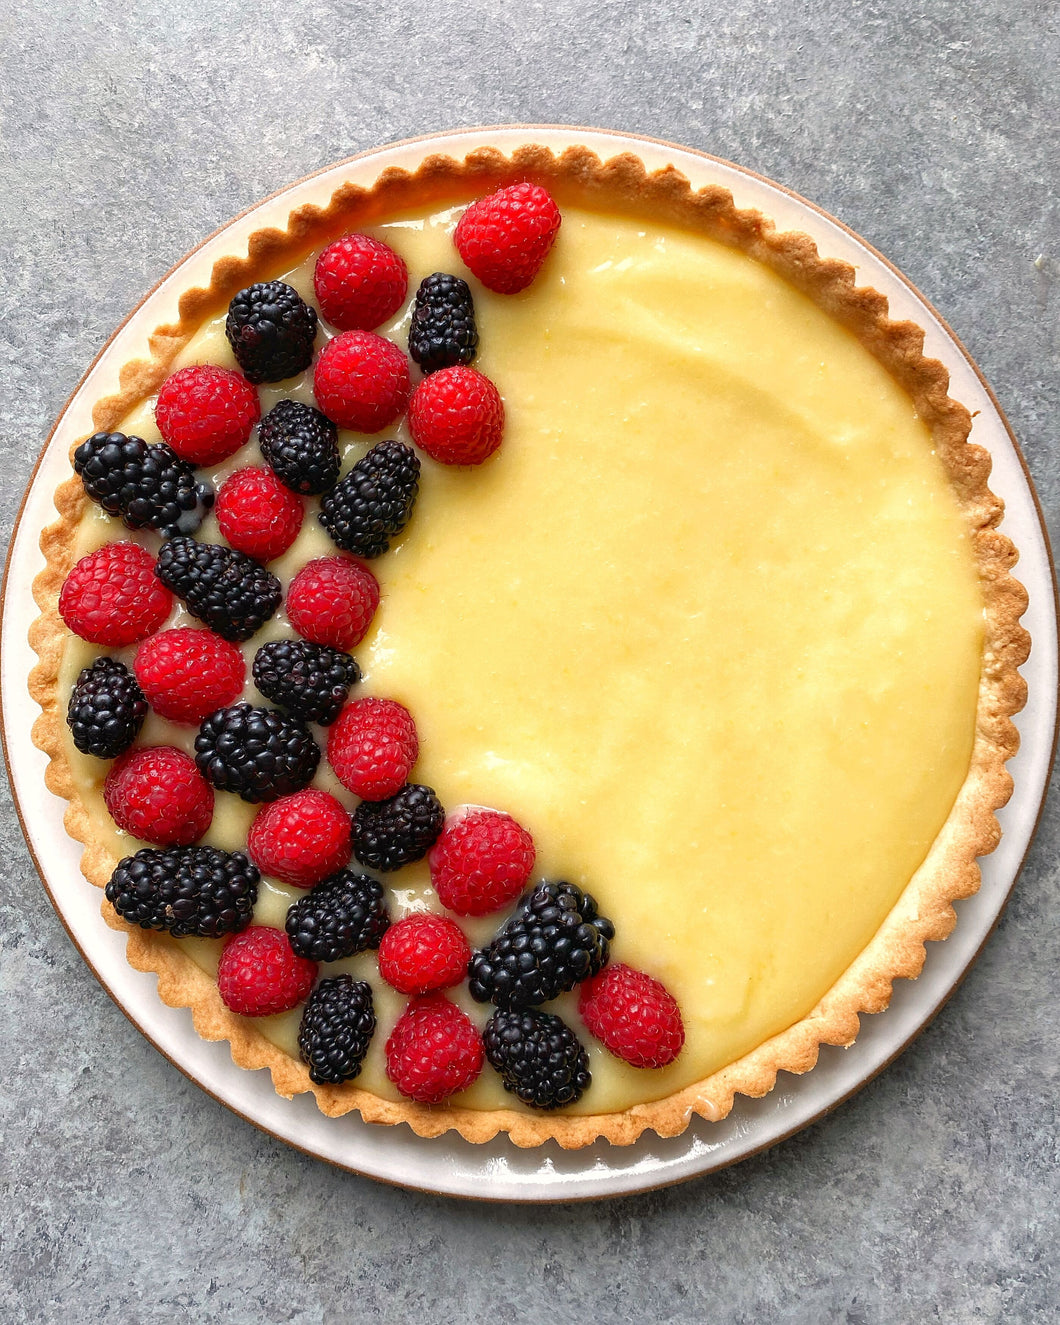 Lemon Curd Tart with Mixed Berries